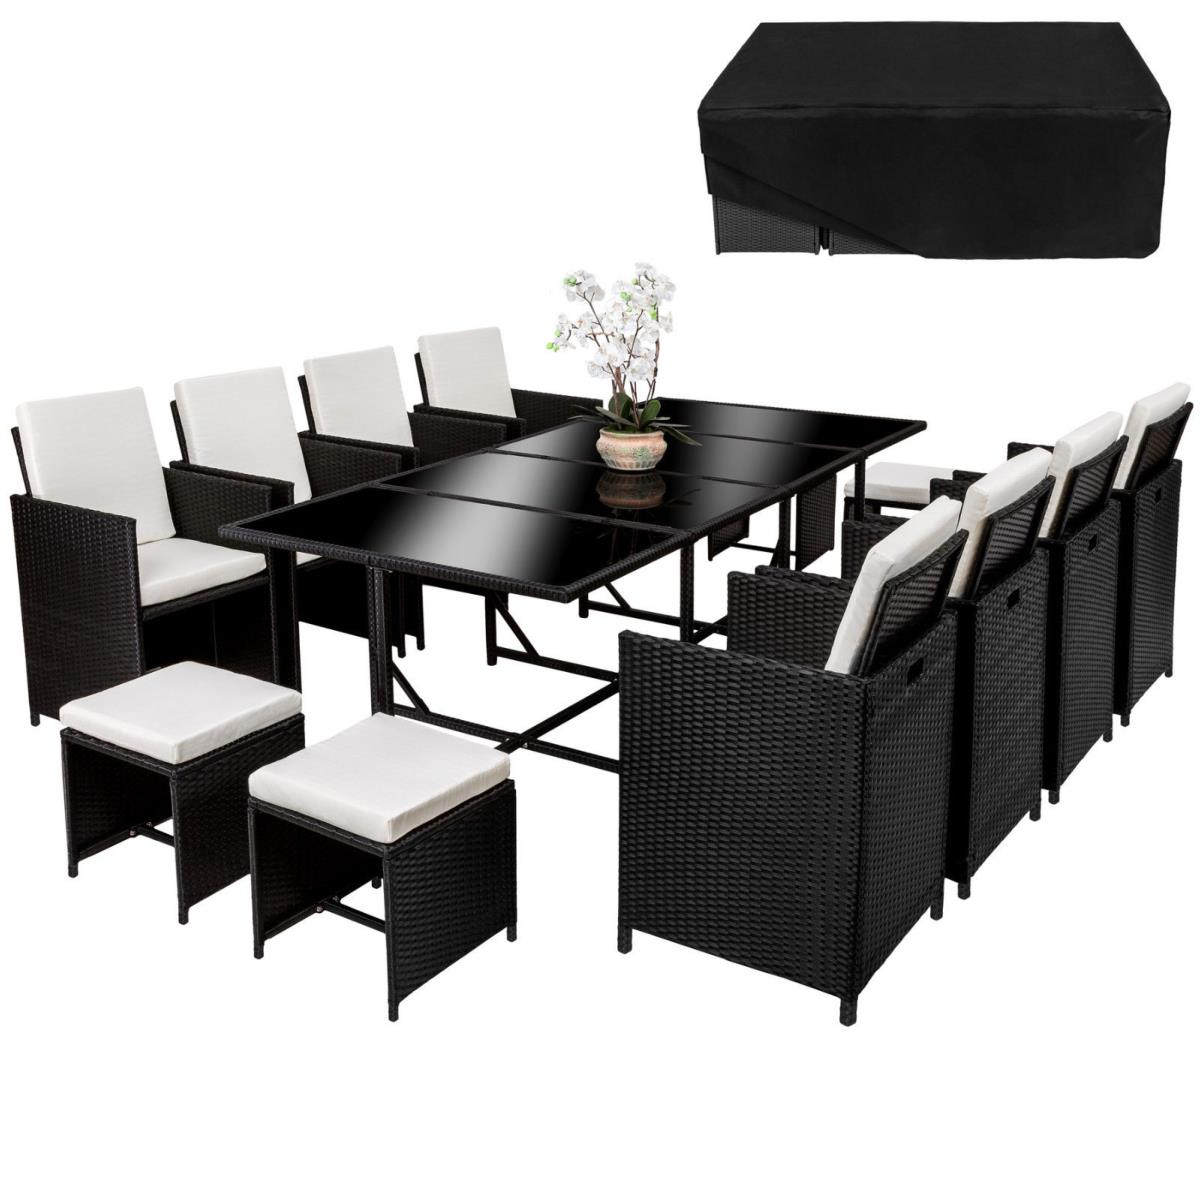 salon de jardin canap r sine tress e 10 ou 12 personnes. Black Bedroom Furniture Sets. Home Design Ideas